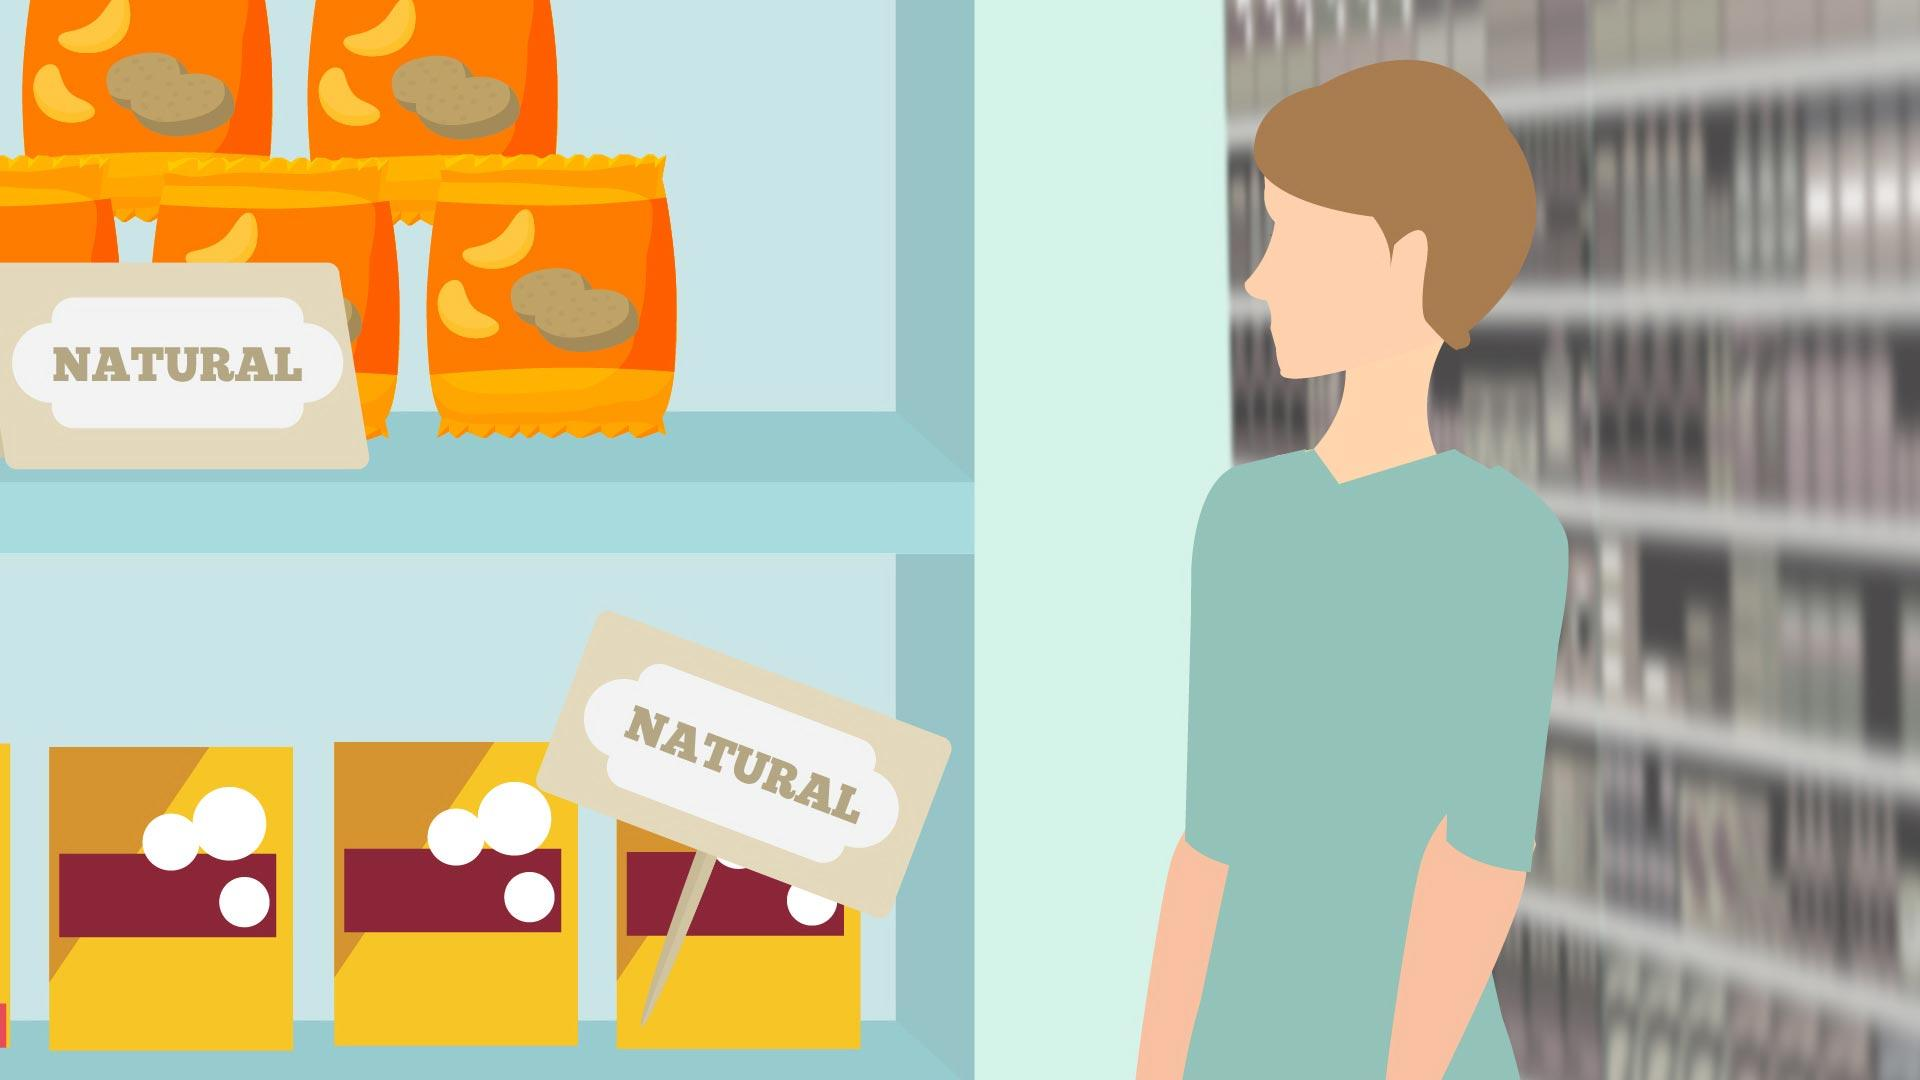 Peeling back the natural. Advertising clipart consumer product